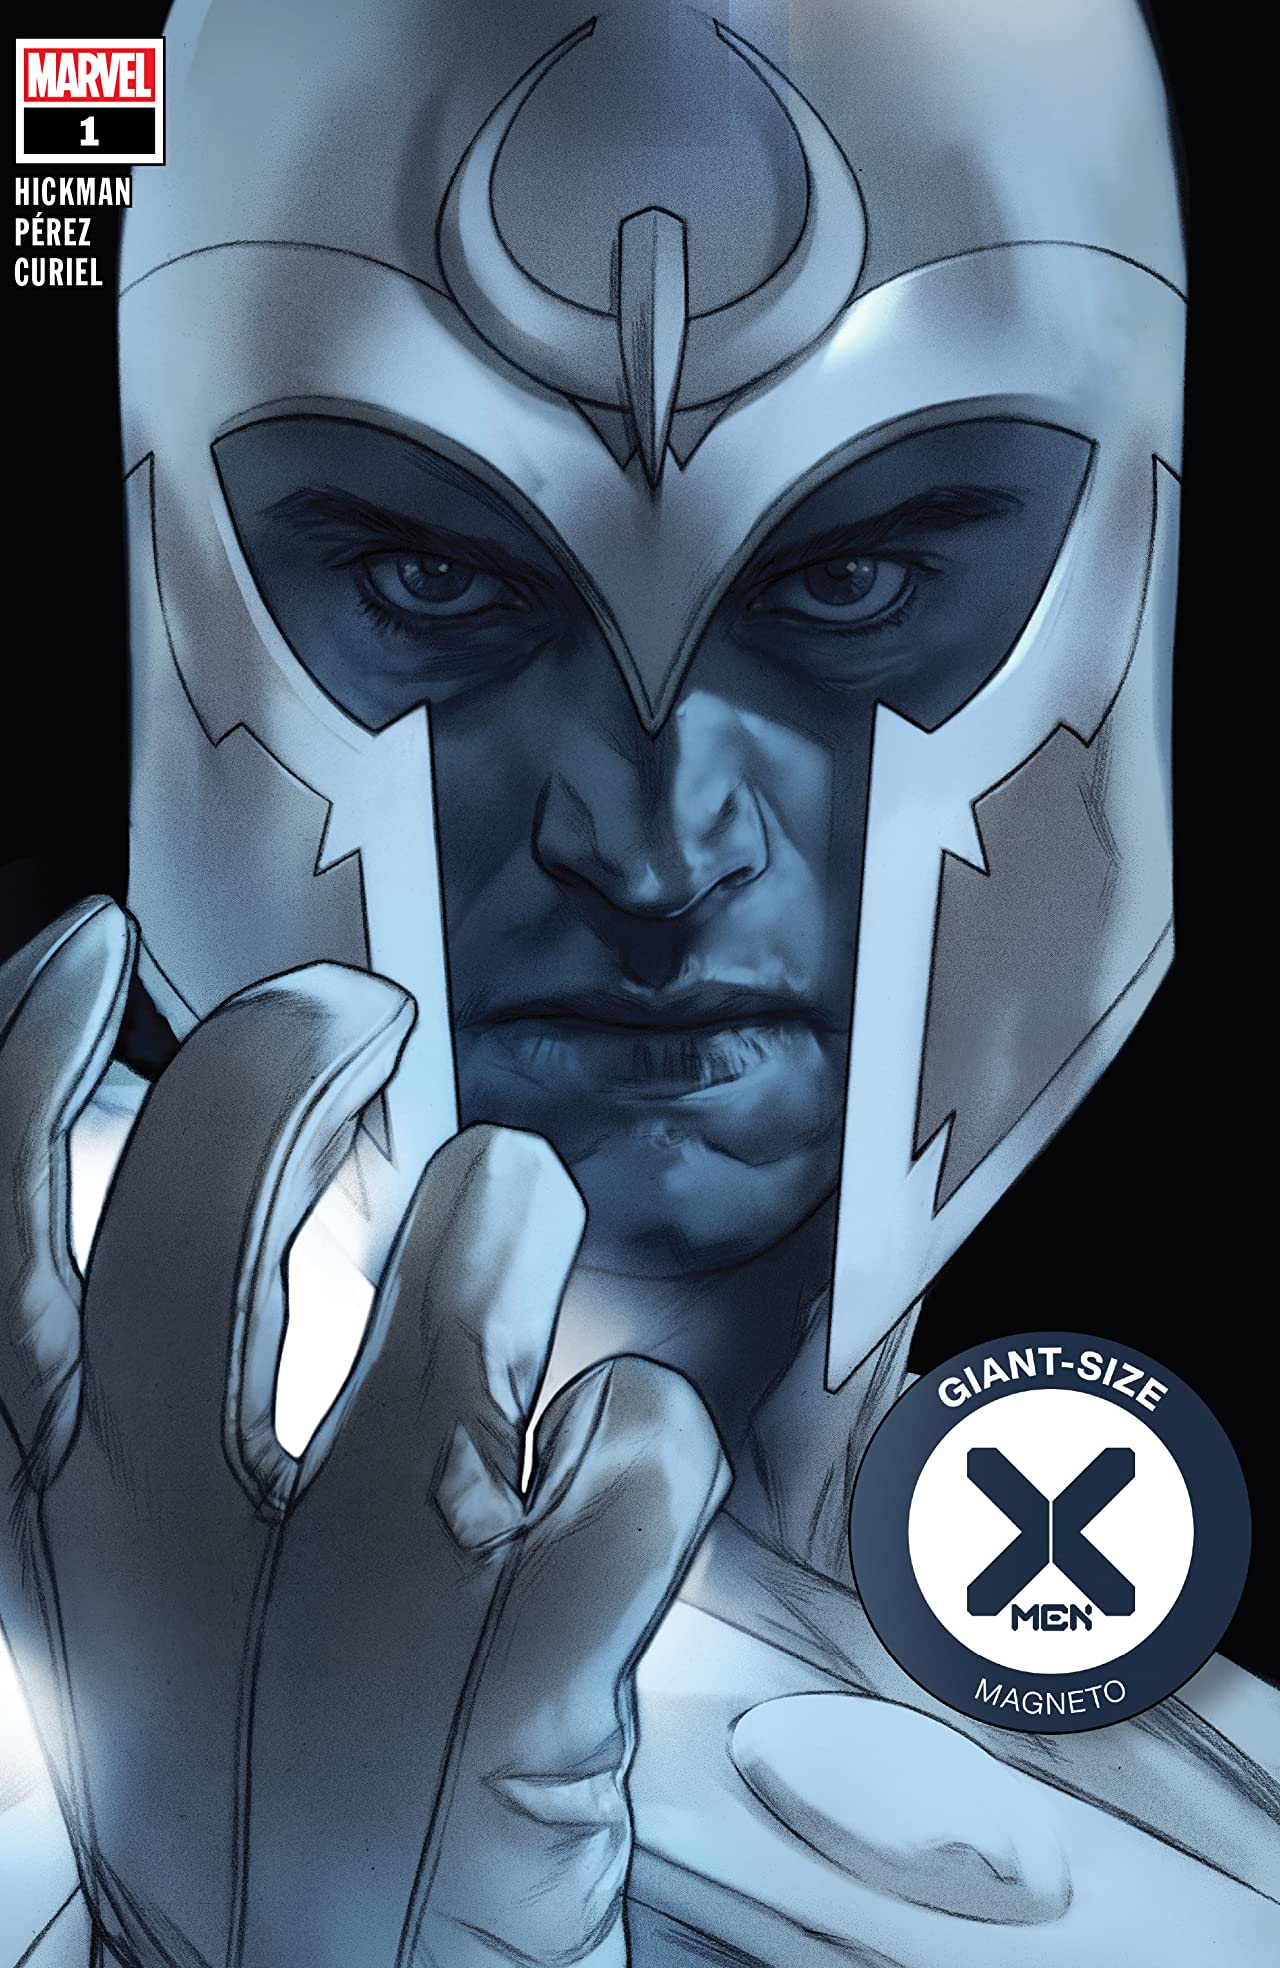 Giant-Size X-Men: Magneto (2020) No.1